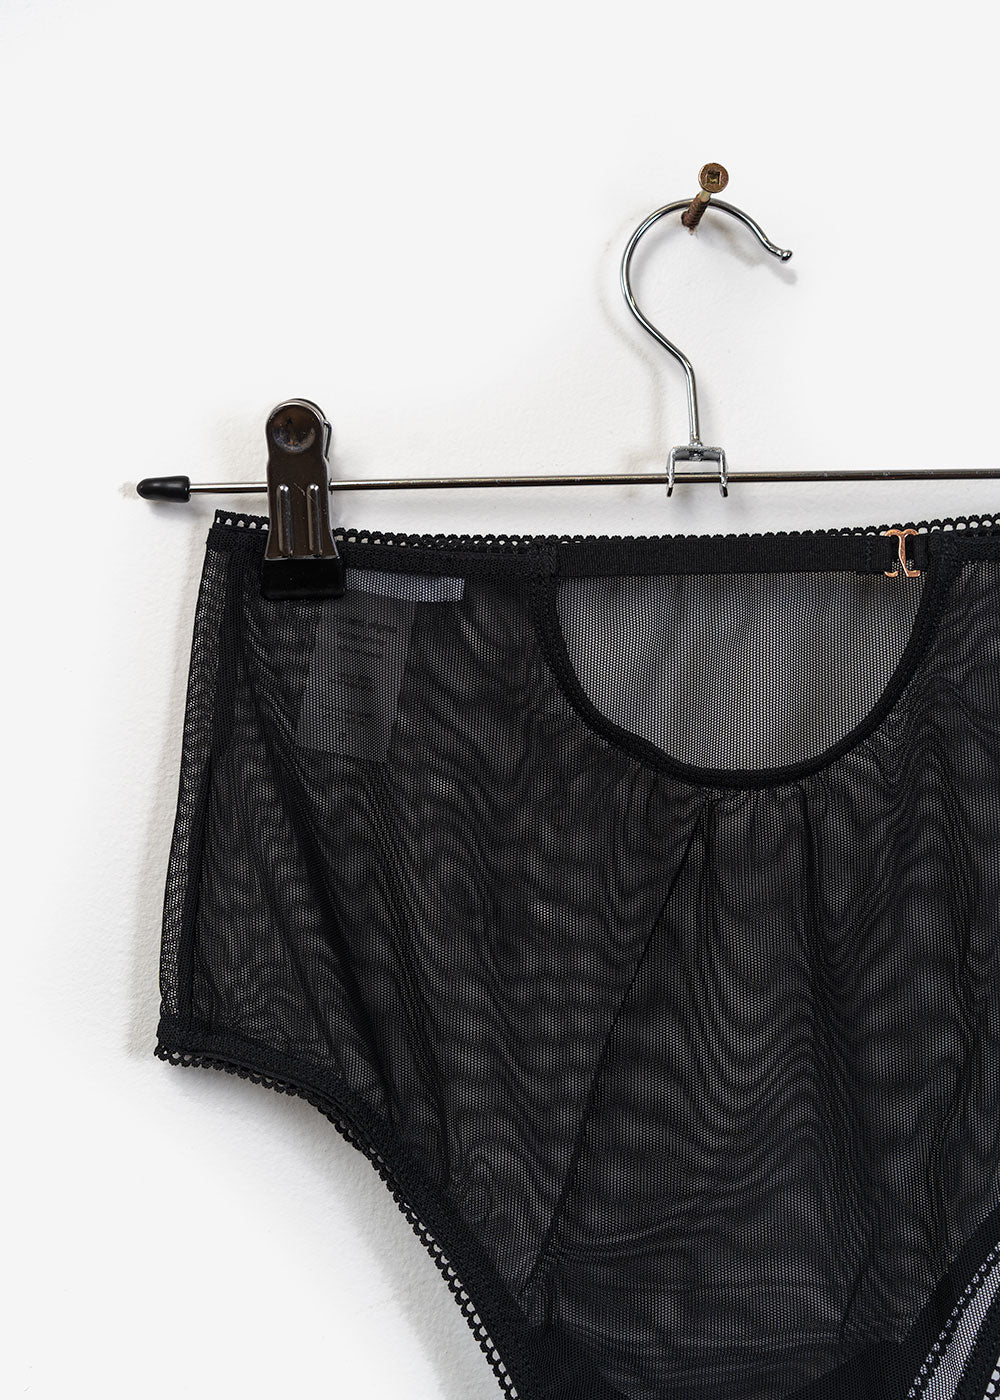 Angie Bauer Shiso Panties — Shop sustainable fashion and slow fashion at New Classics Studios